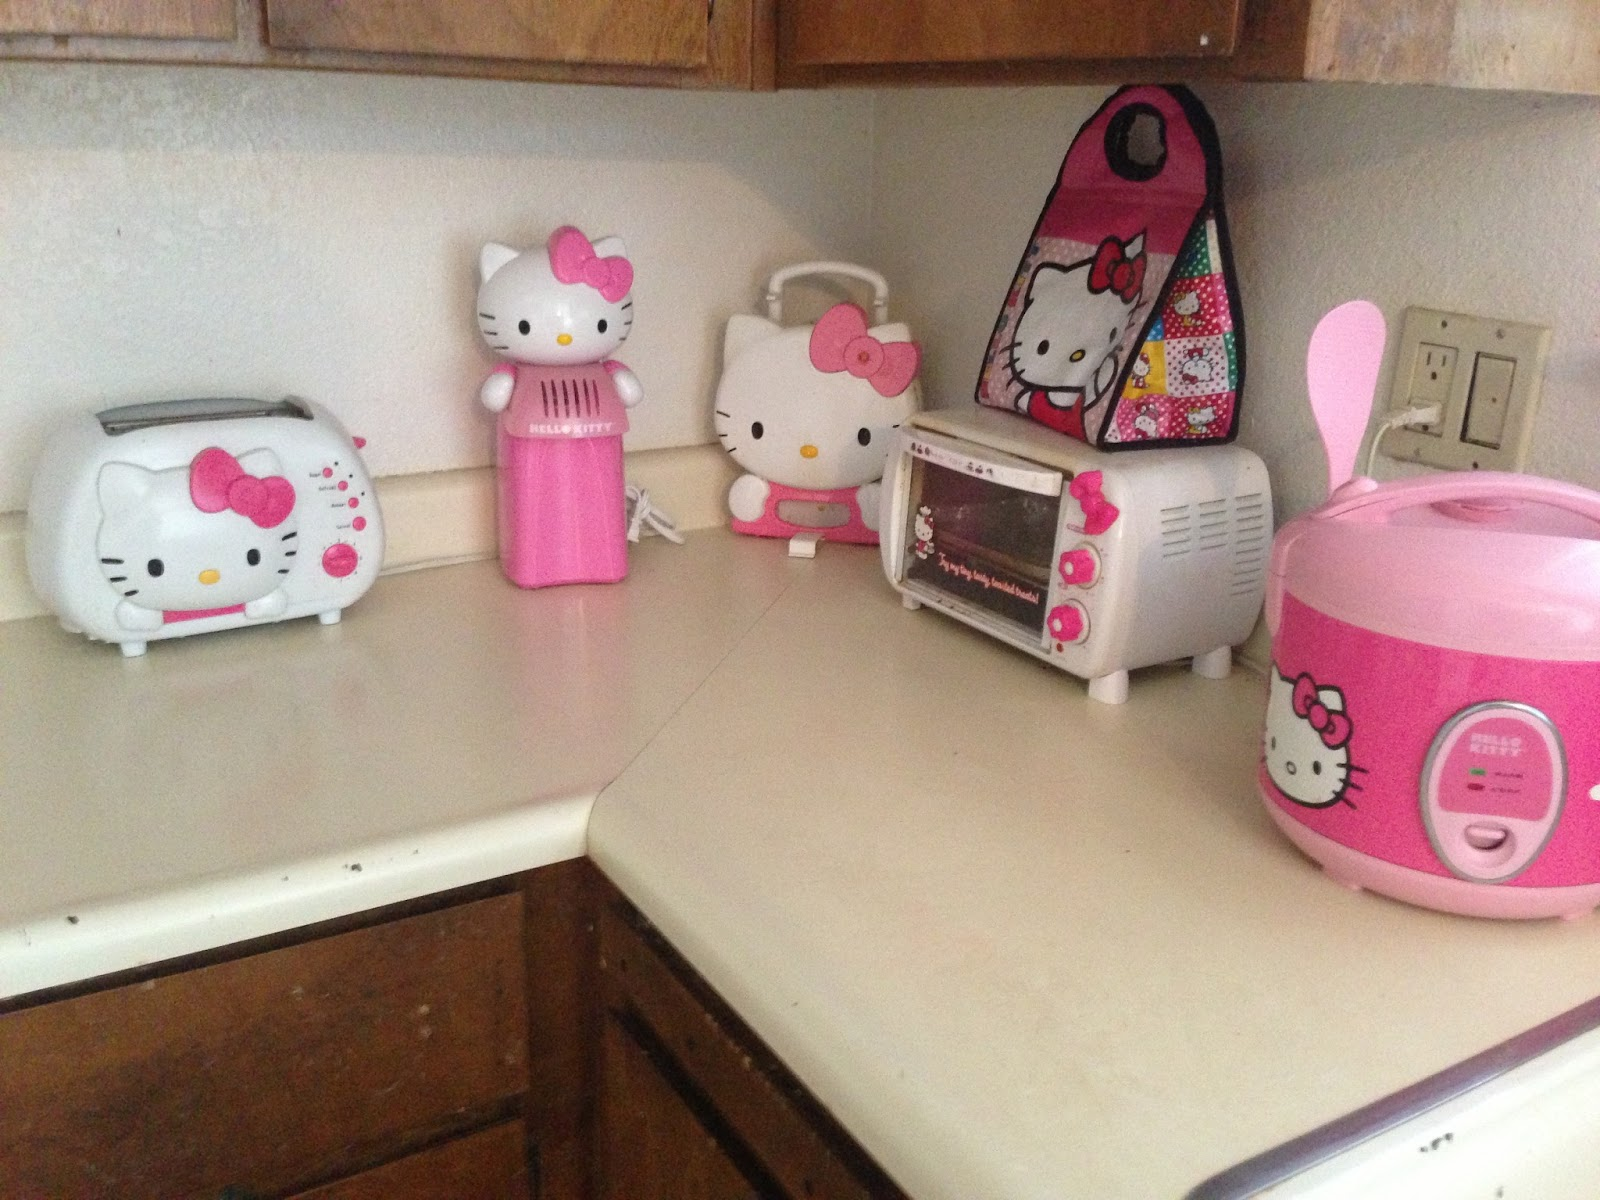 Uncategorized Hello Kitty Kitchen Appliances not blessed mama i have a hello kitty kitchen may 2 2013